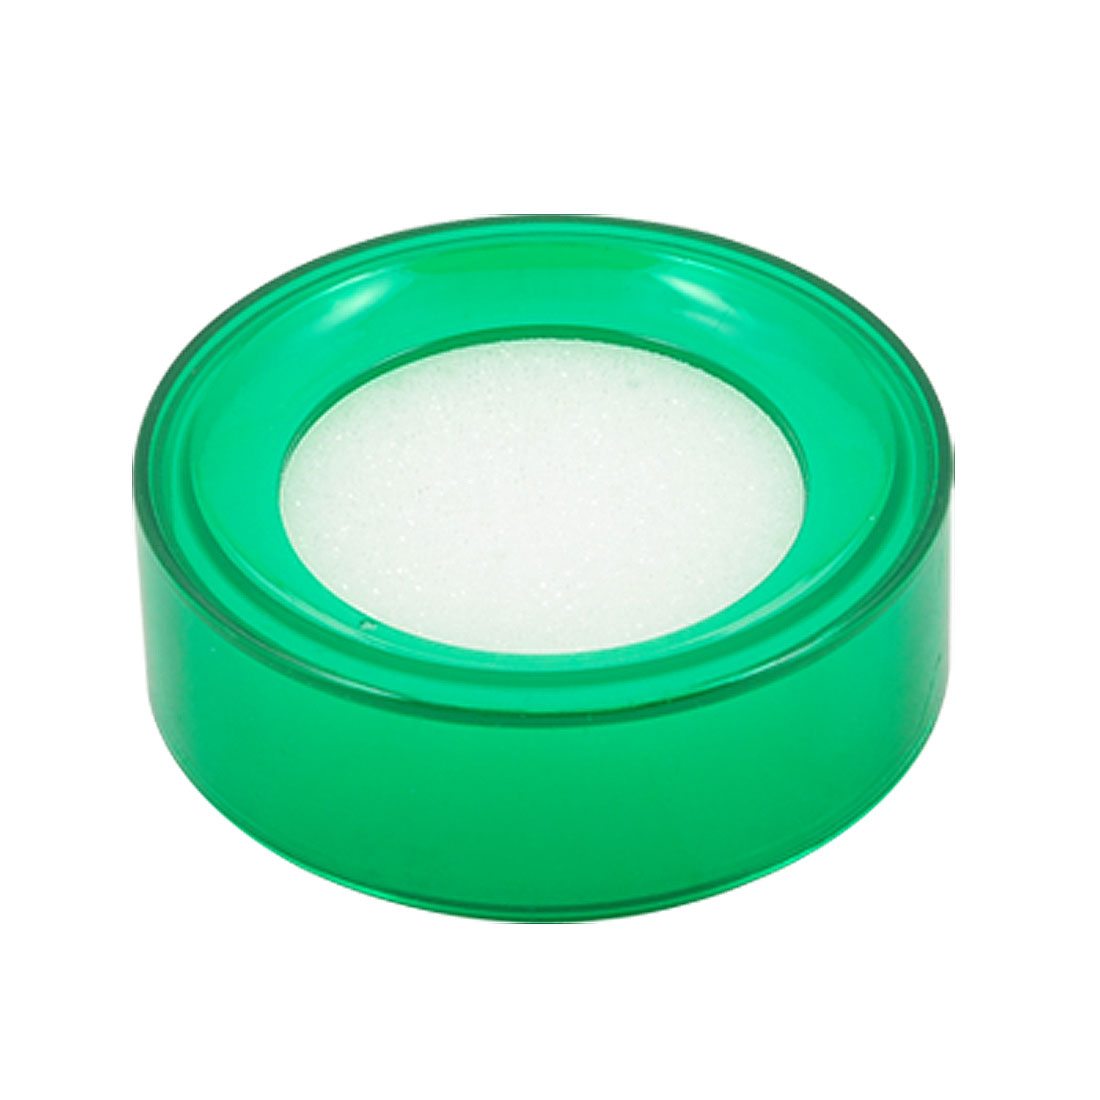 Store Cashier Round Plastic Bottle Sponge Finger Wet Money Casher Green